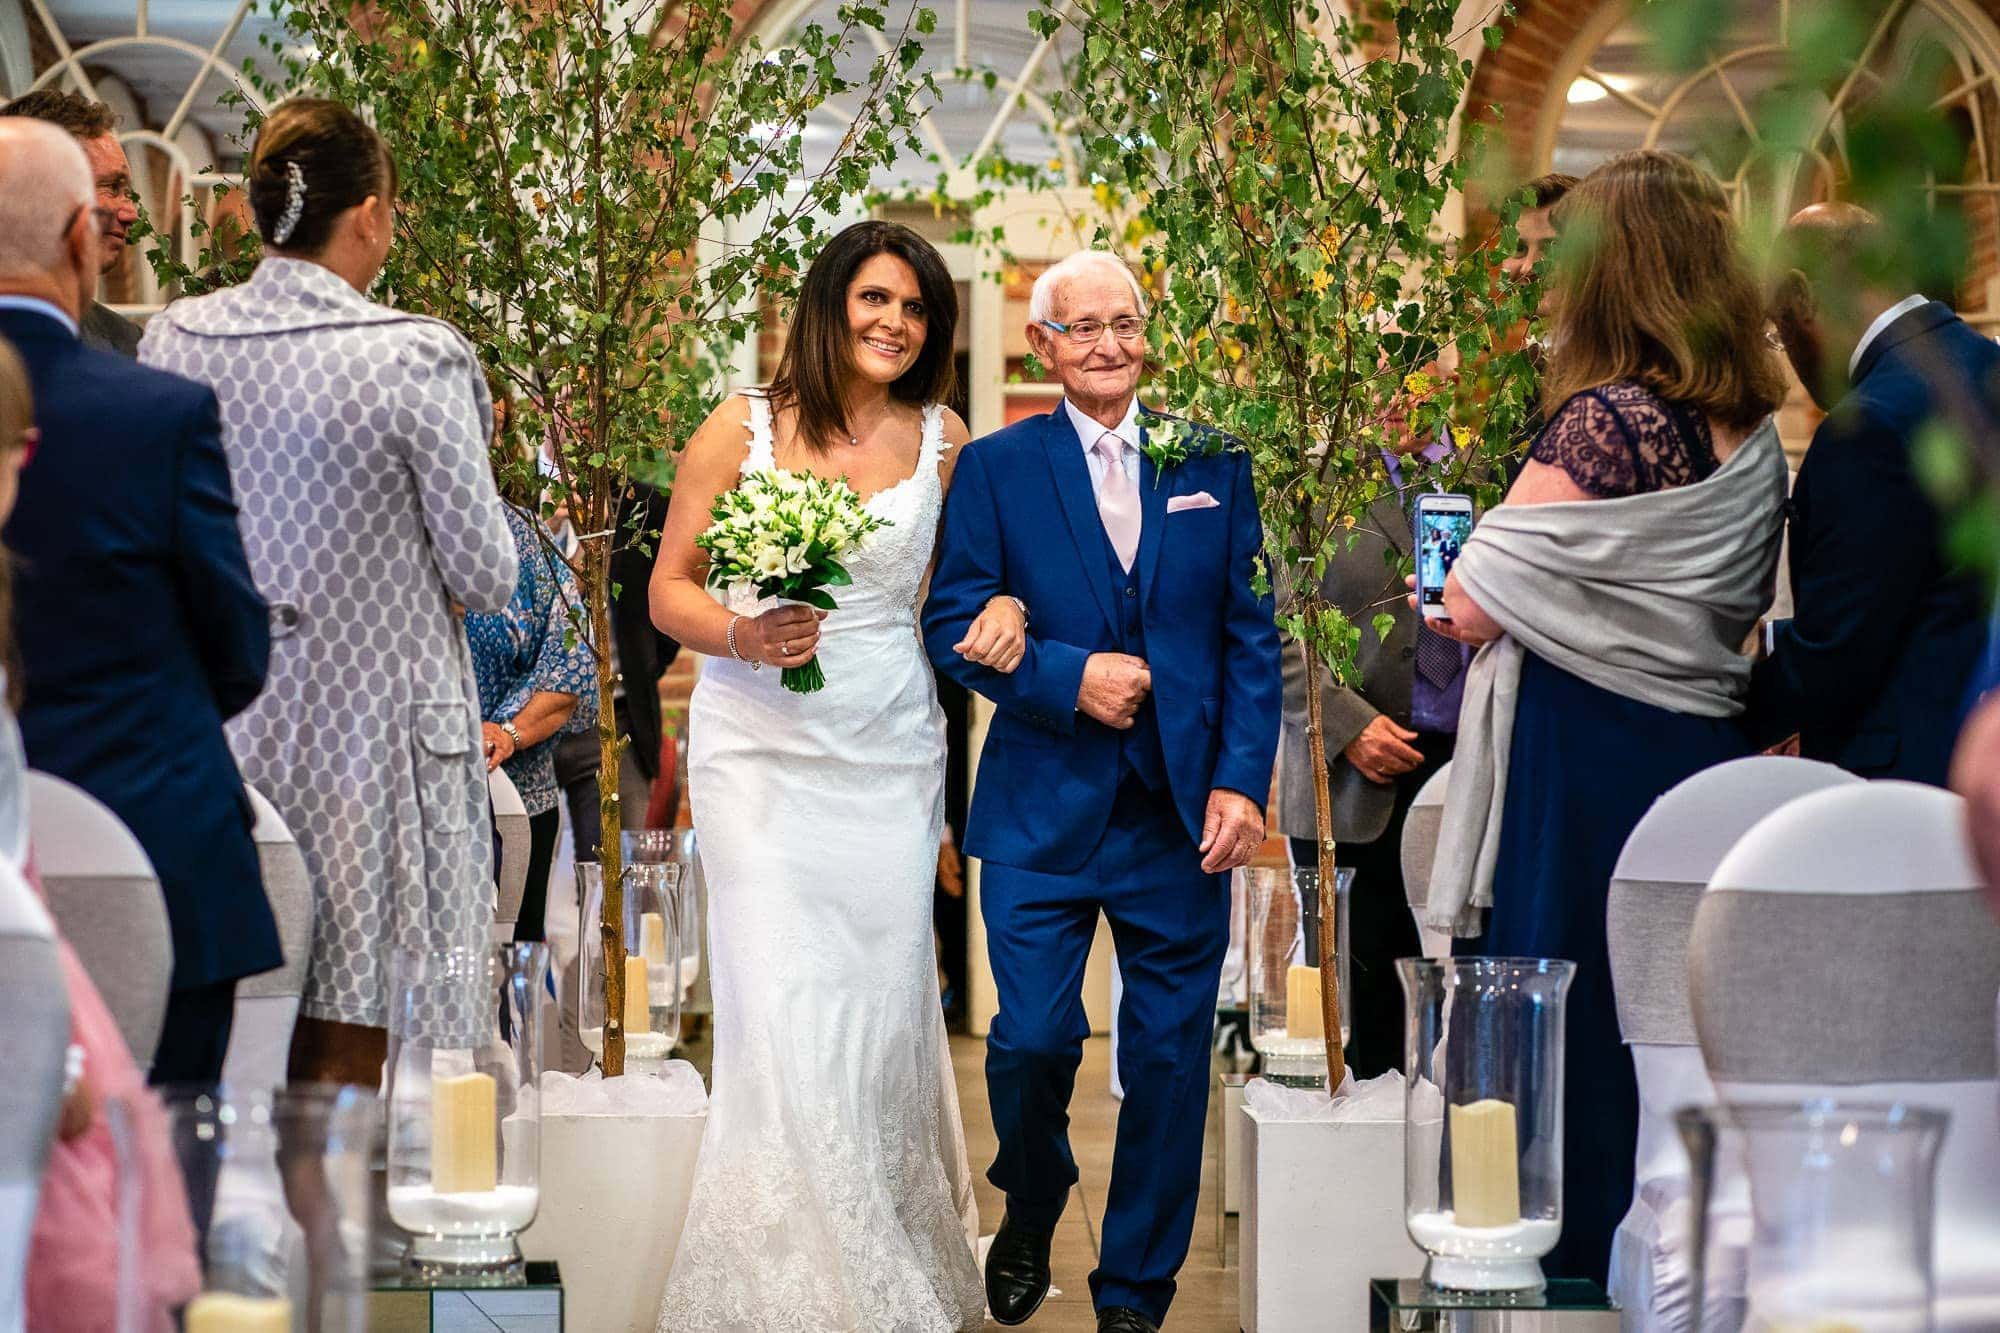 Bride and father walking down aisle in the Orangery at Great Fosters wedding